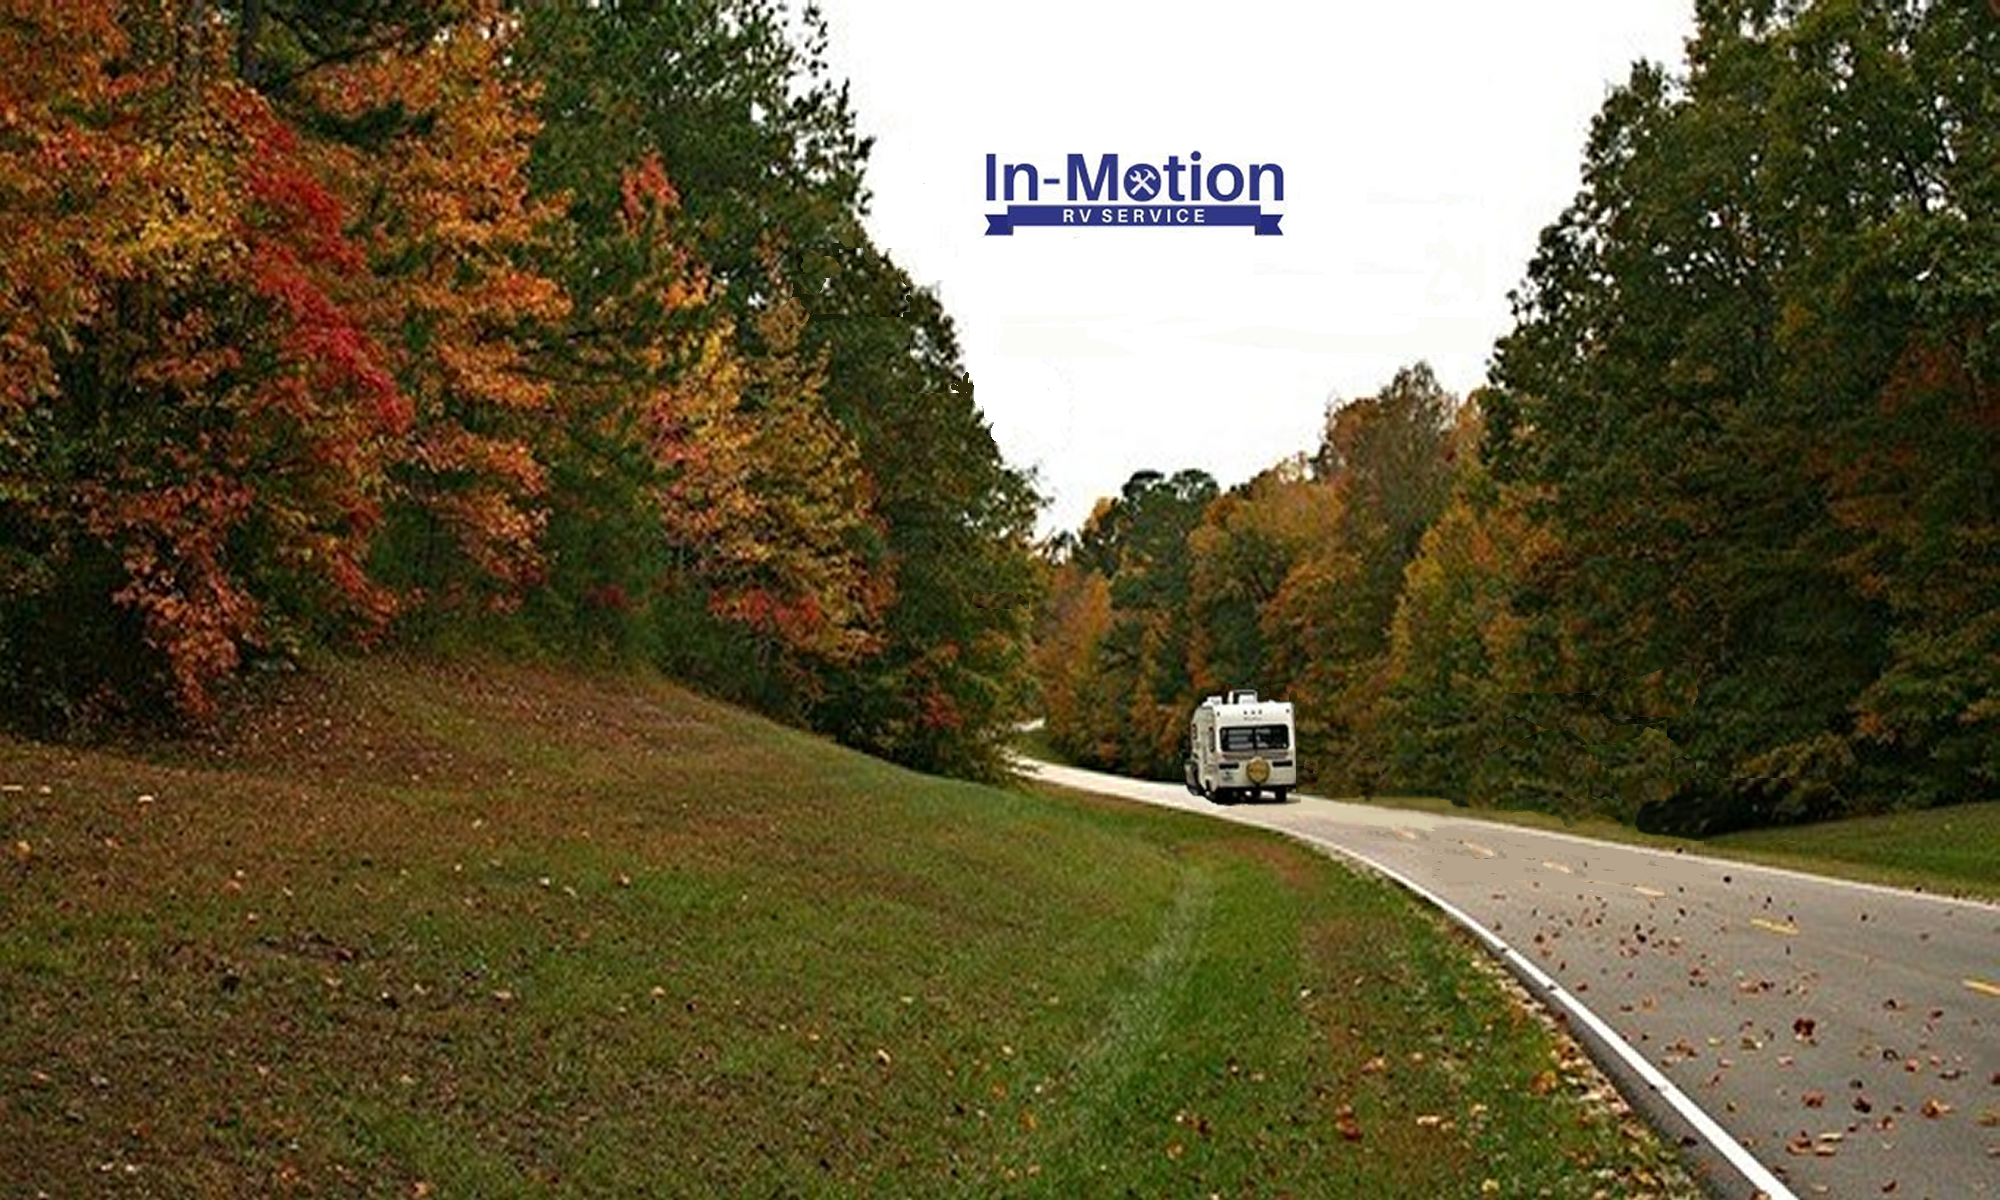 In-Motion RV Service & Repair